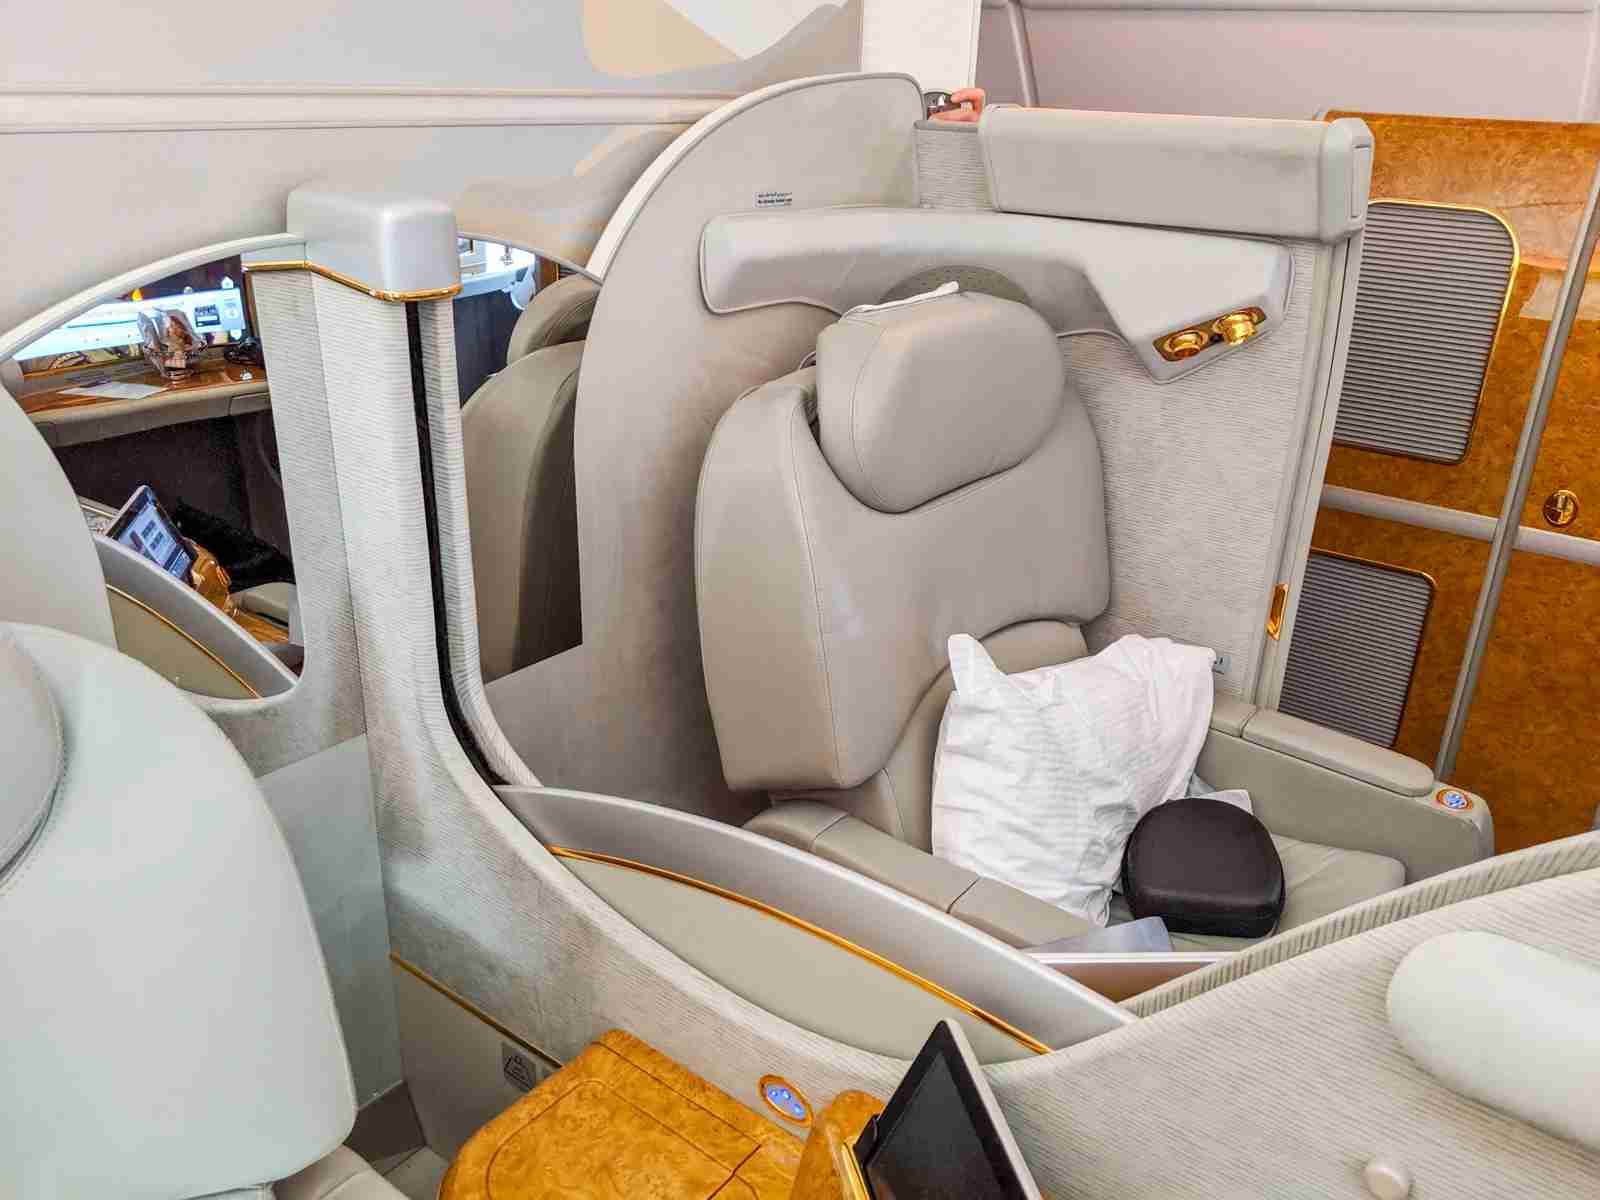 Emirates First Class A380 (Photo by JT Genter/The Points Guy)